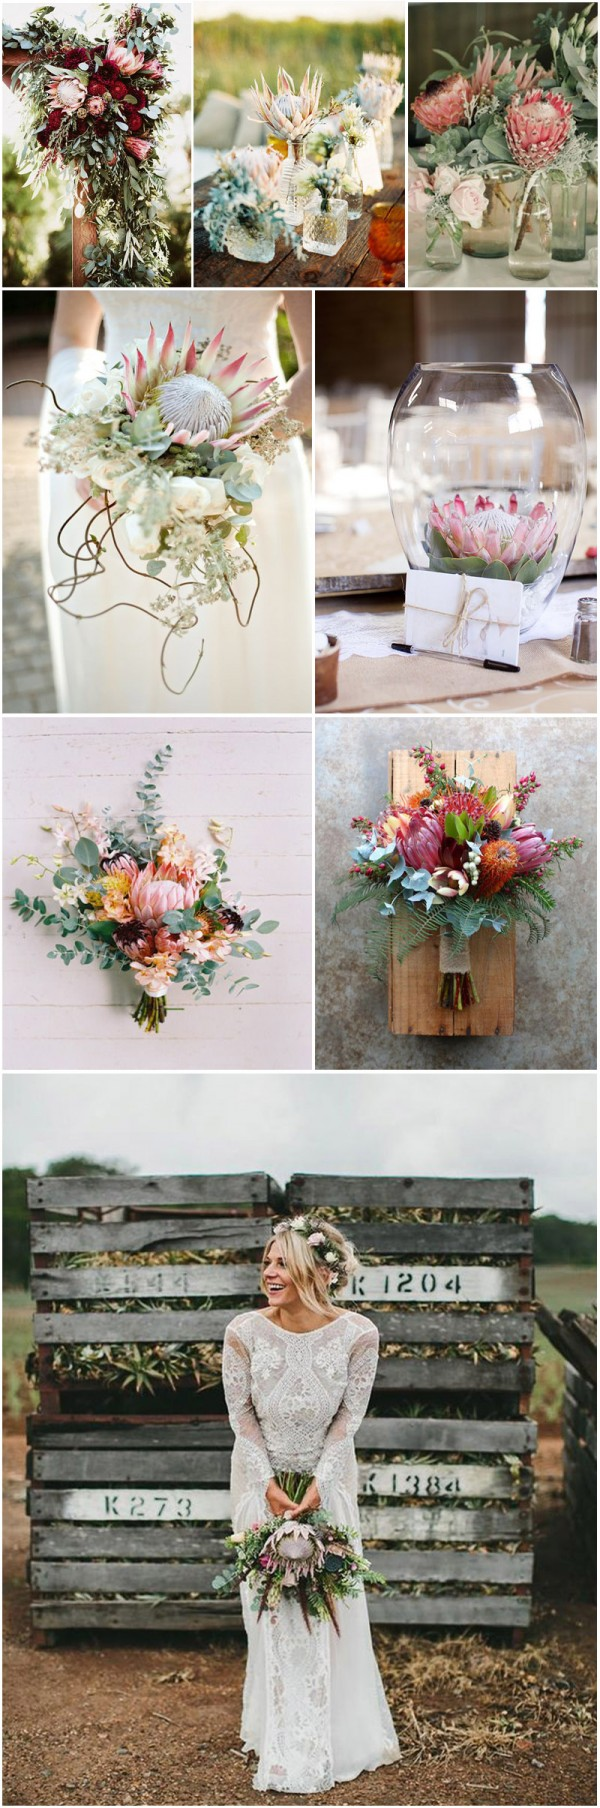 Protea bouquets and decorations for the wedding ceremony